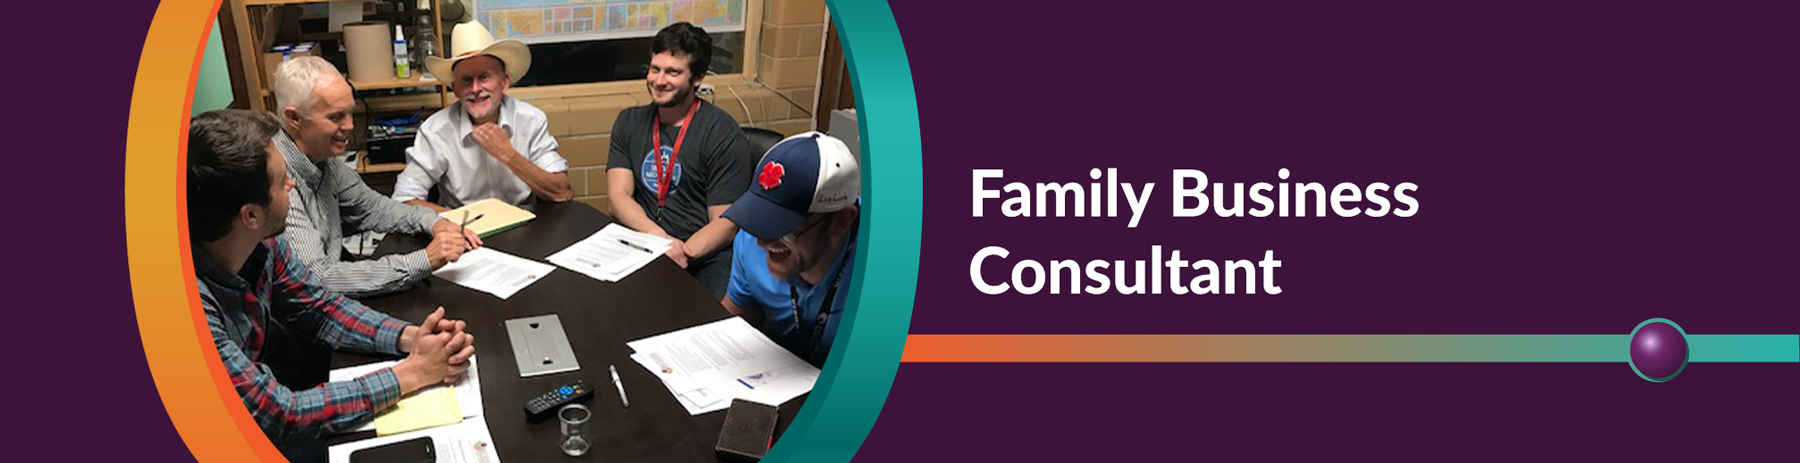 family business consulting